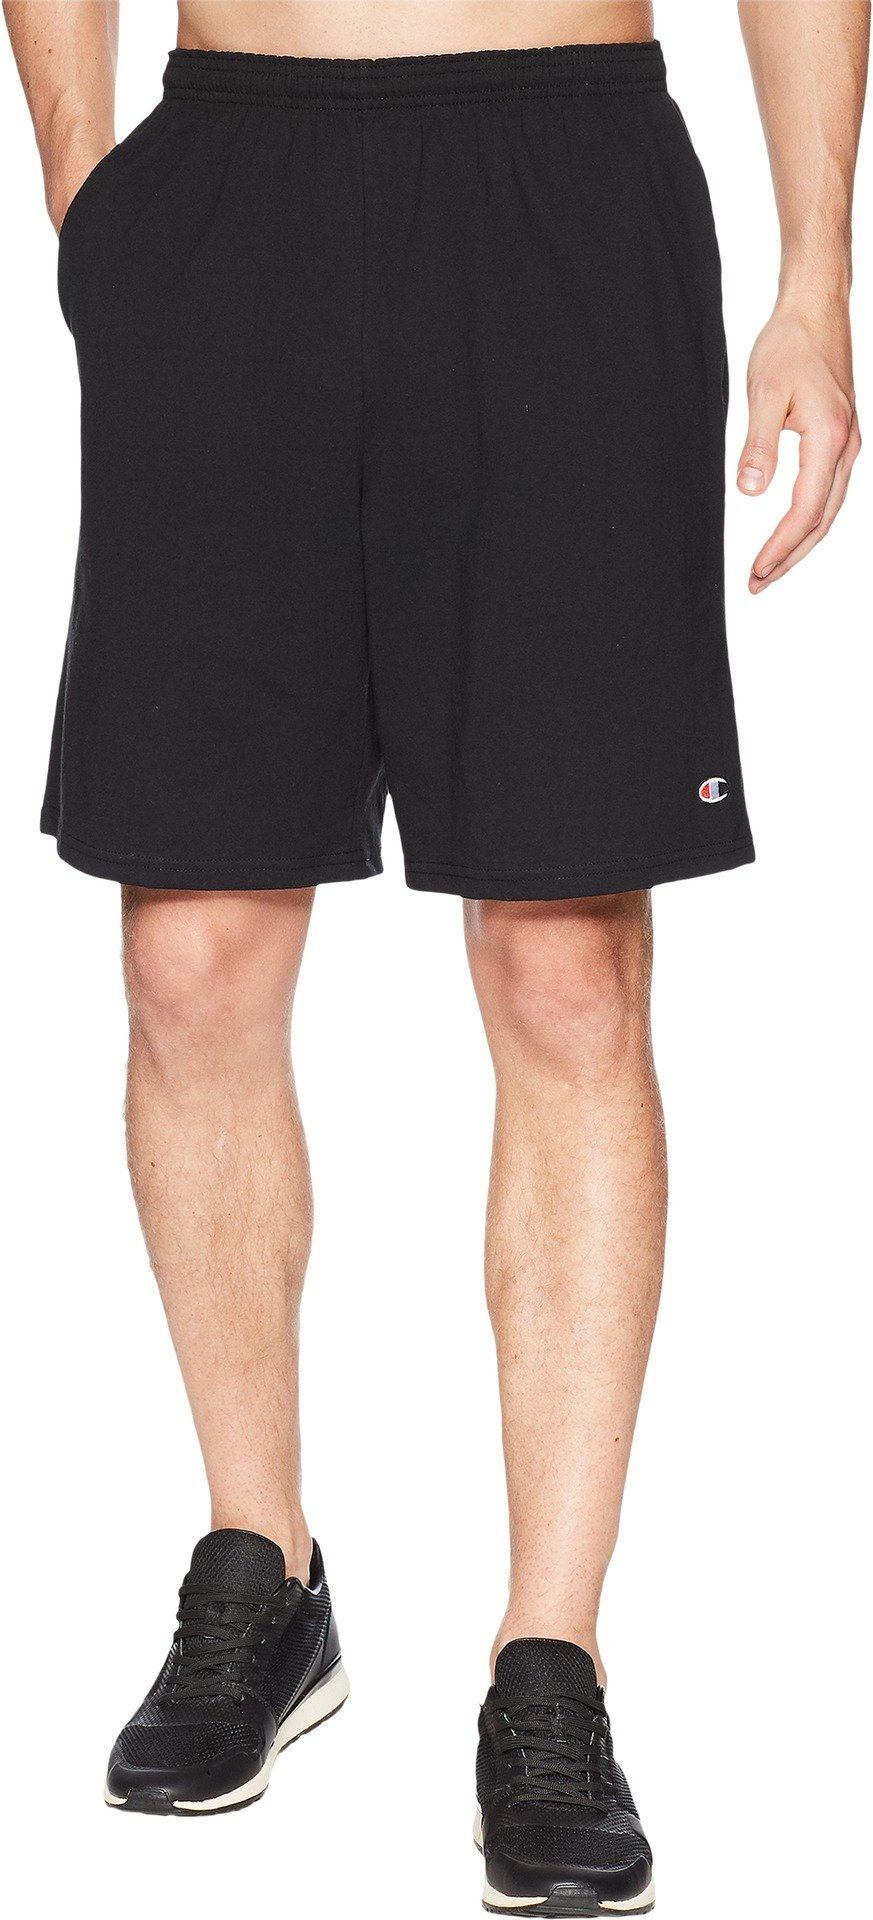 Champion Men's Jersey Short With Pockets, Black, Small